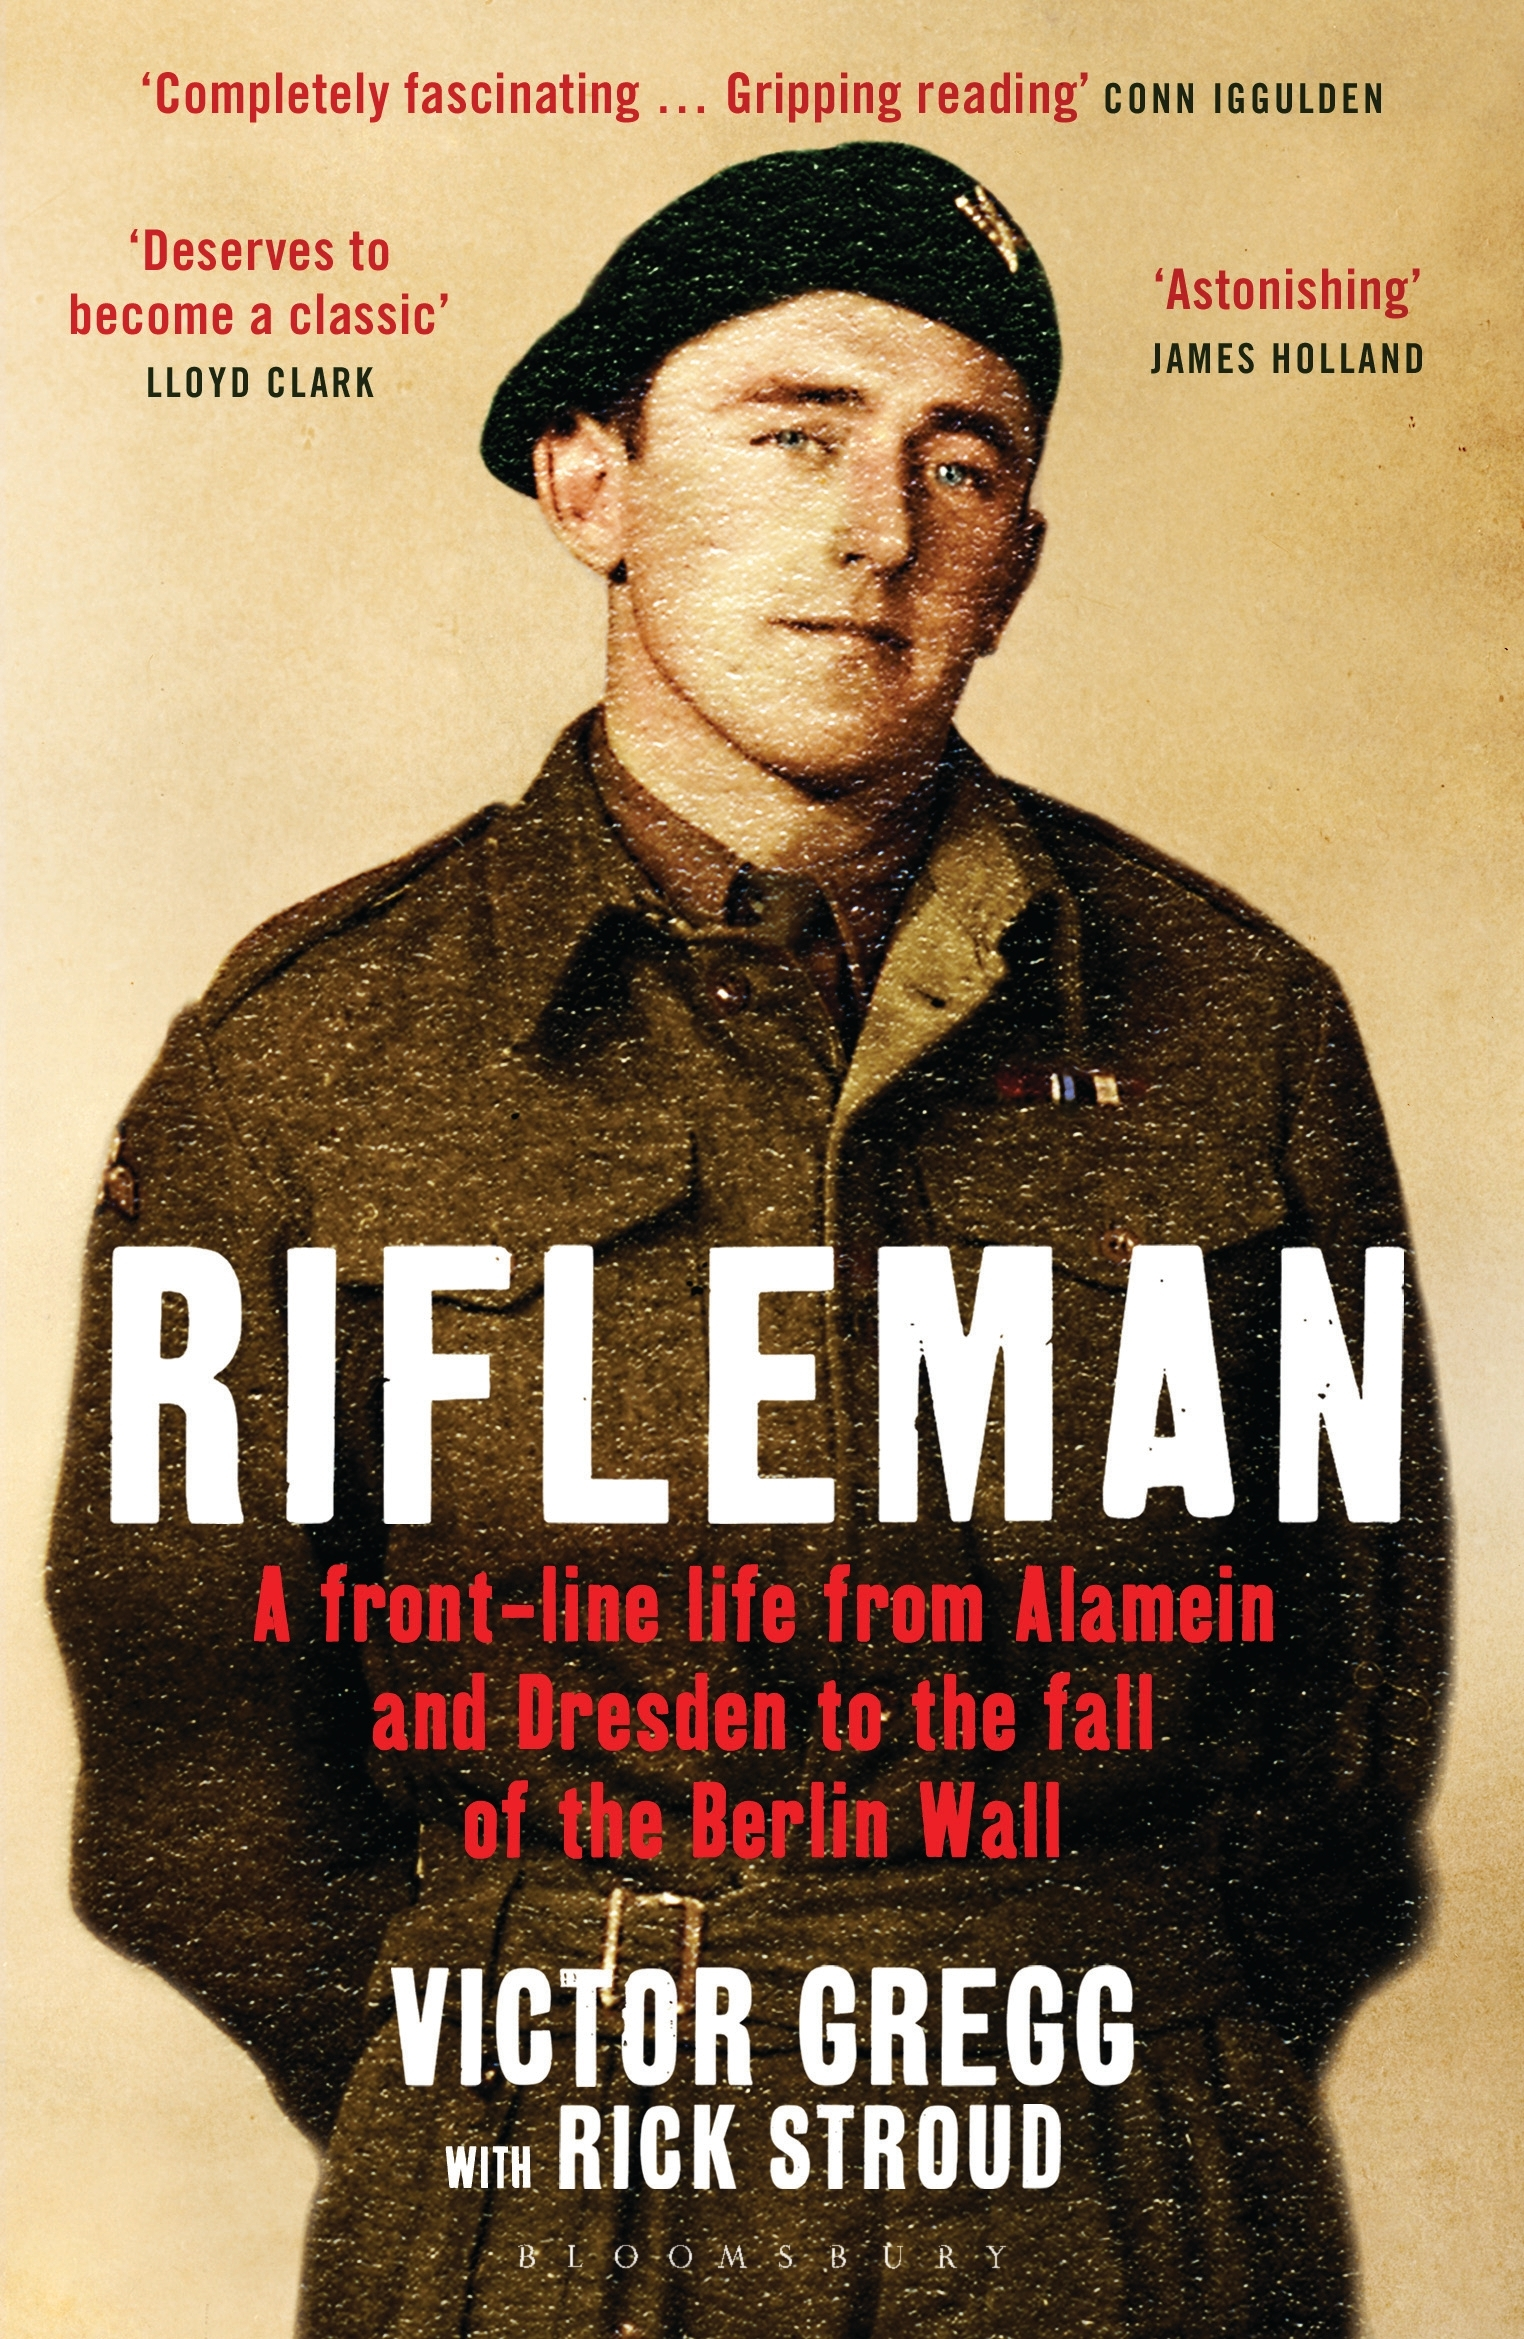 Rifleman: A Front Line Life A Front-Line Life from Alamein and Dresden to the Fall of the Berlin Wall